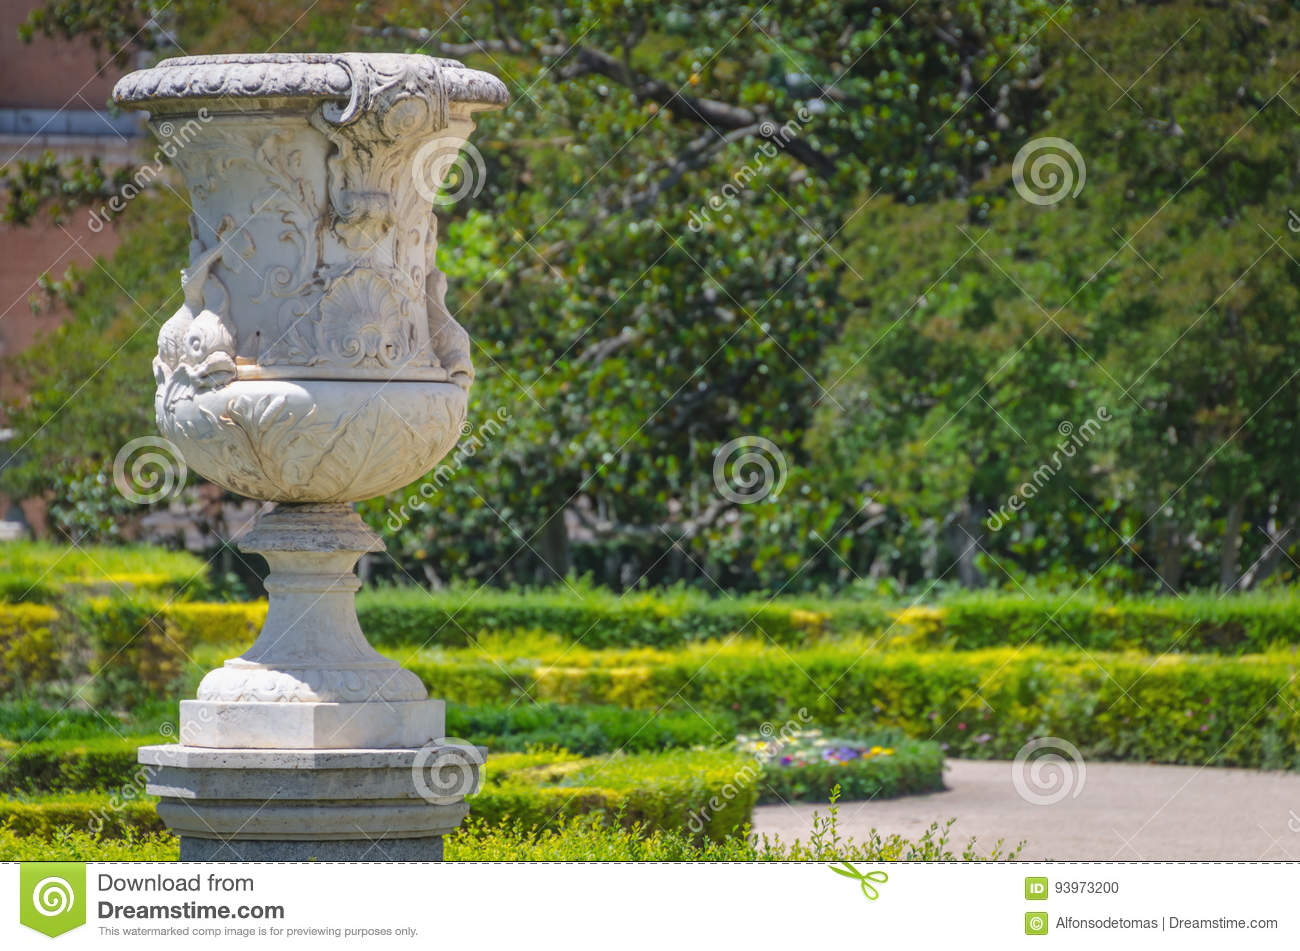 Decoration Parterre Decorative Vase In Parterre Garden Aranjuez Stock Photo Image Of